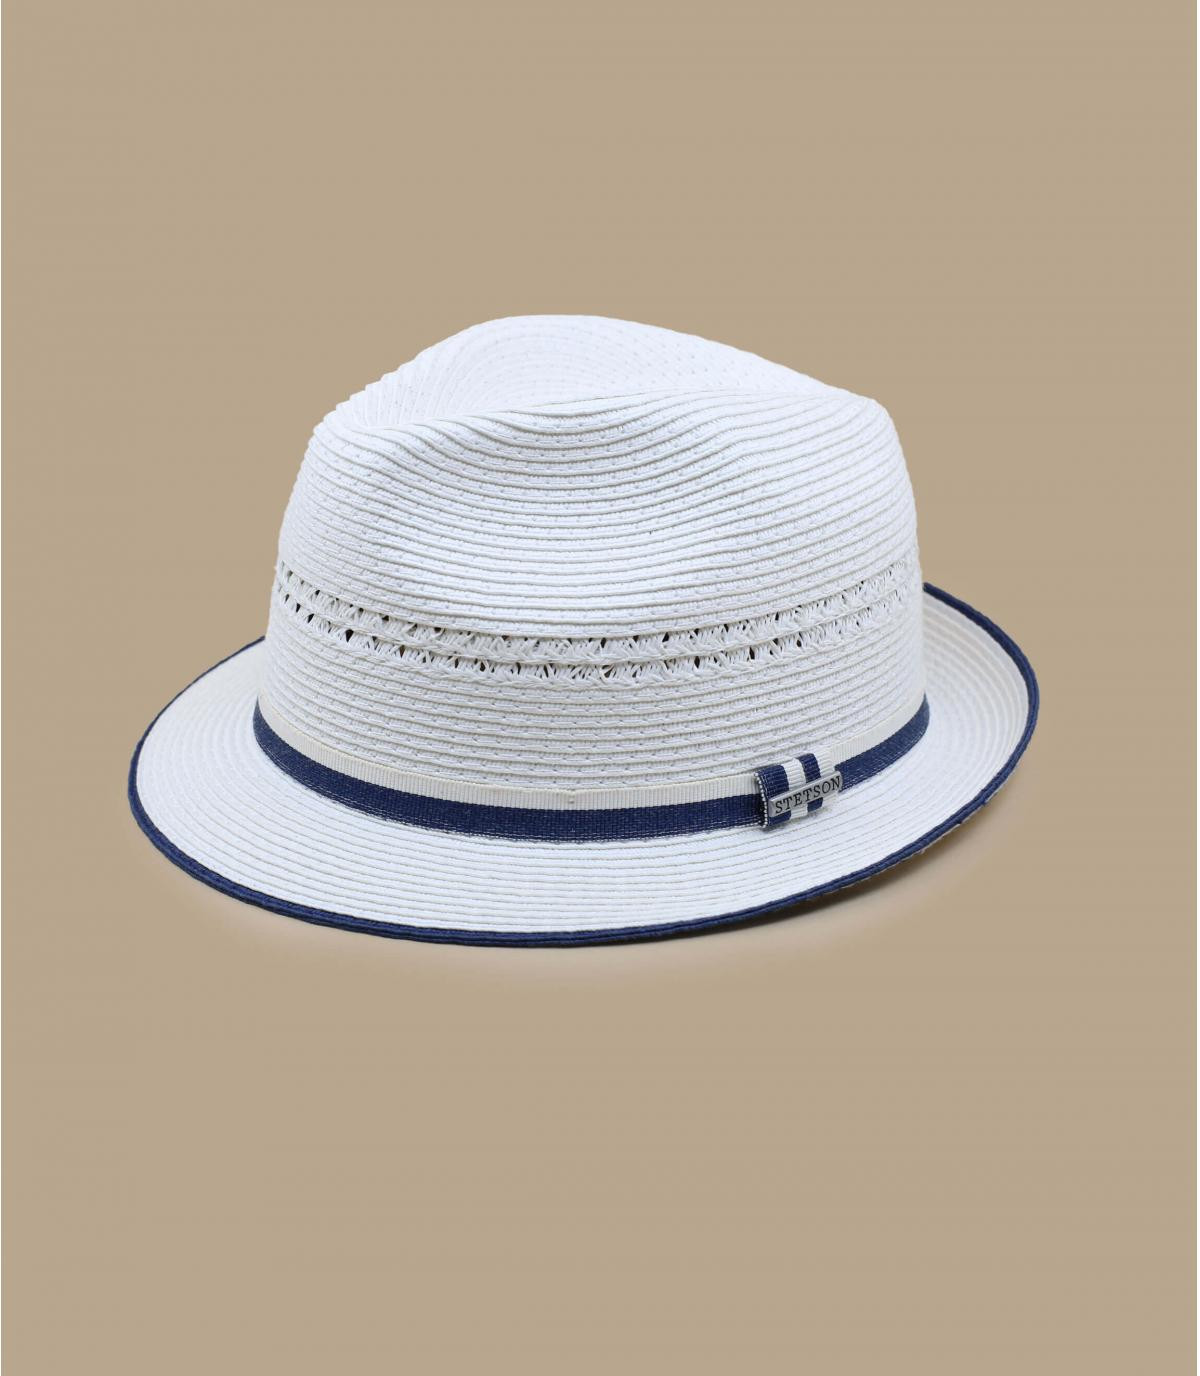 Details Trilby Toyo white - afbeeling 4